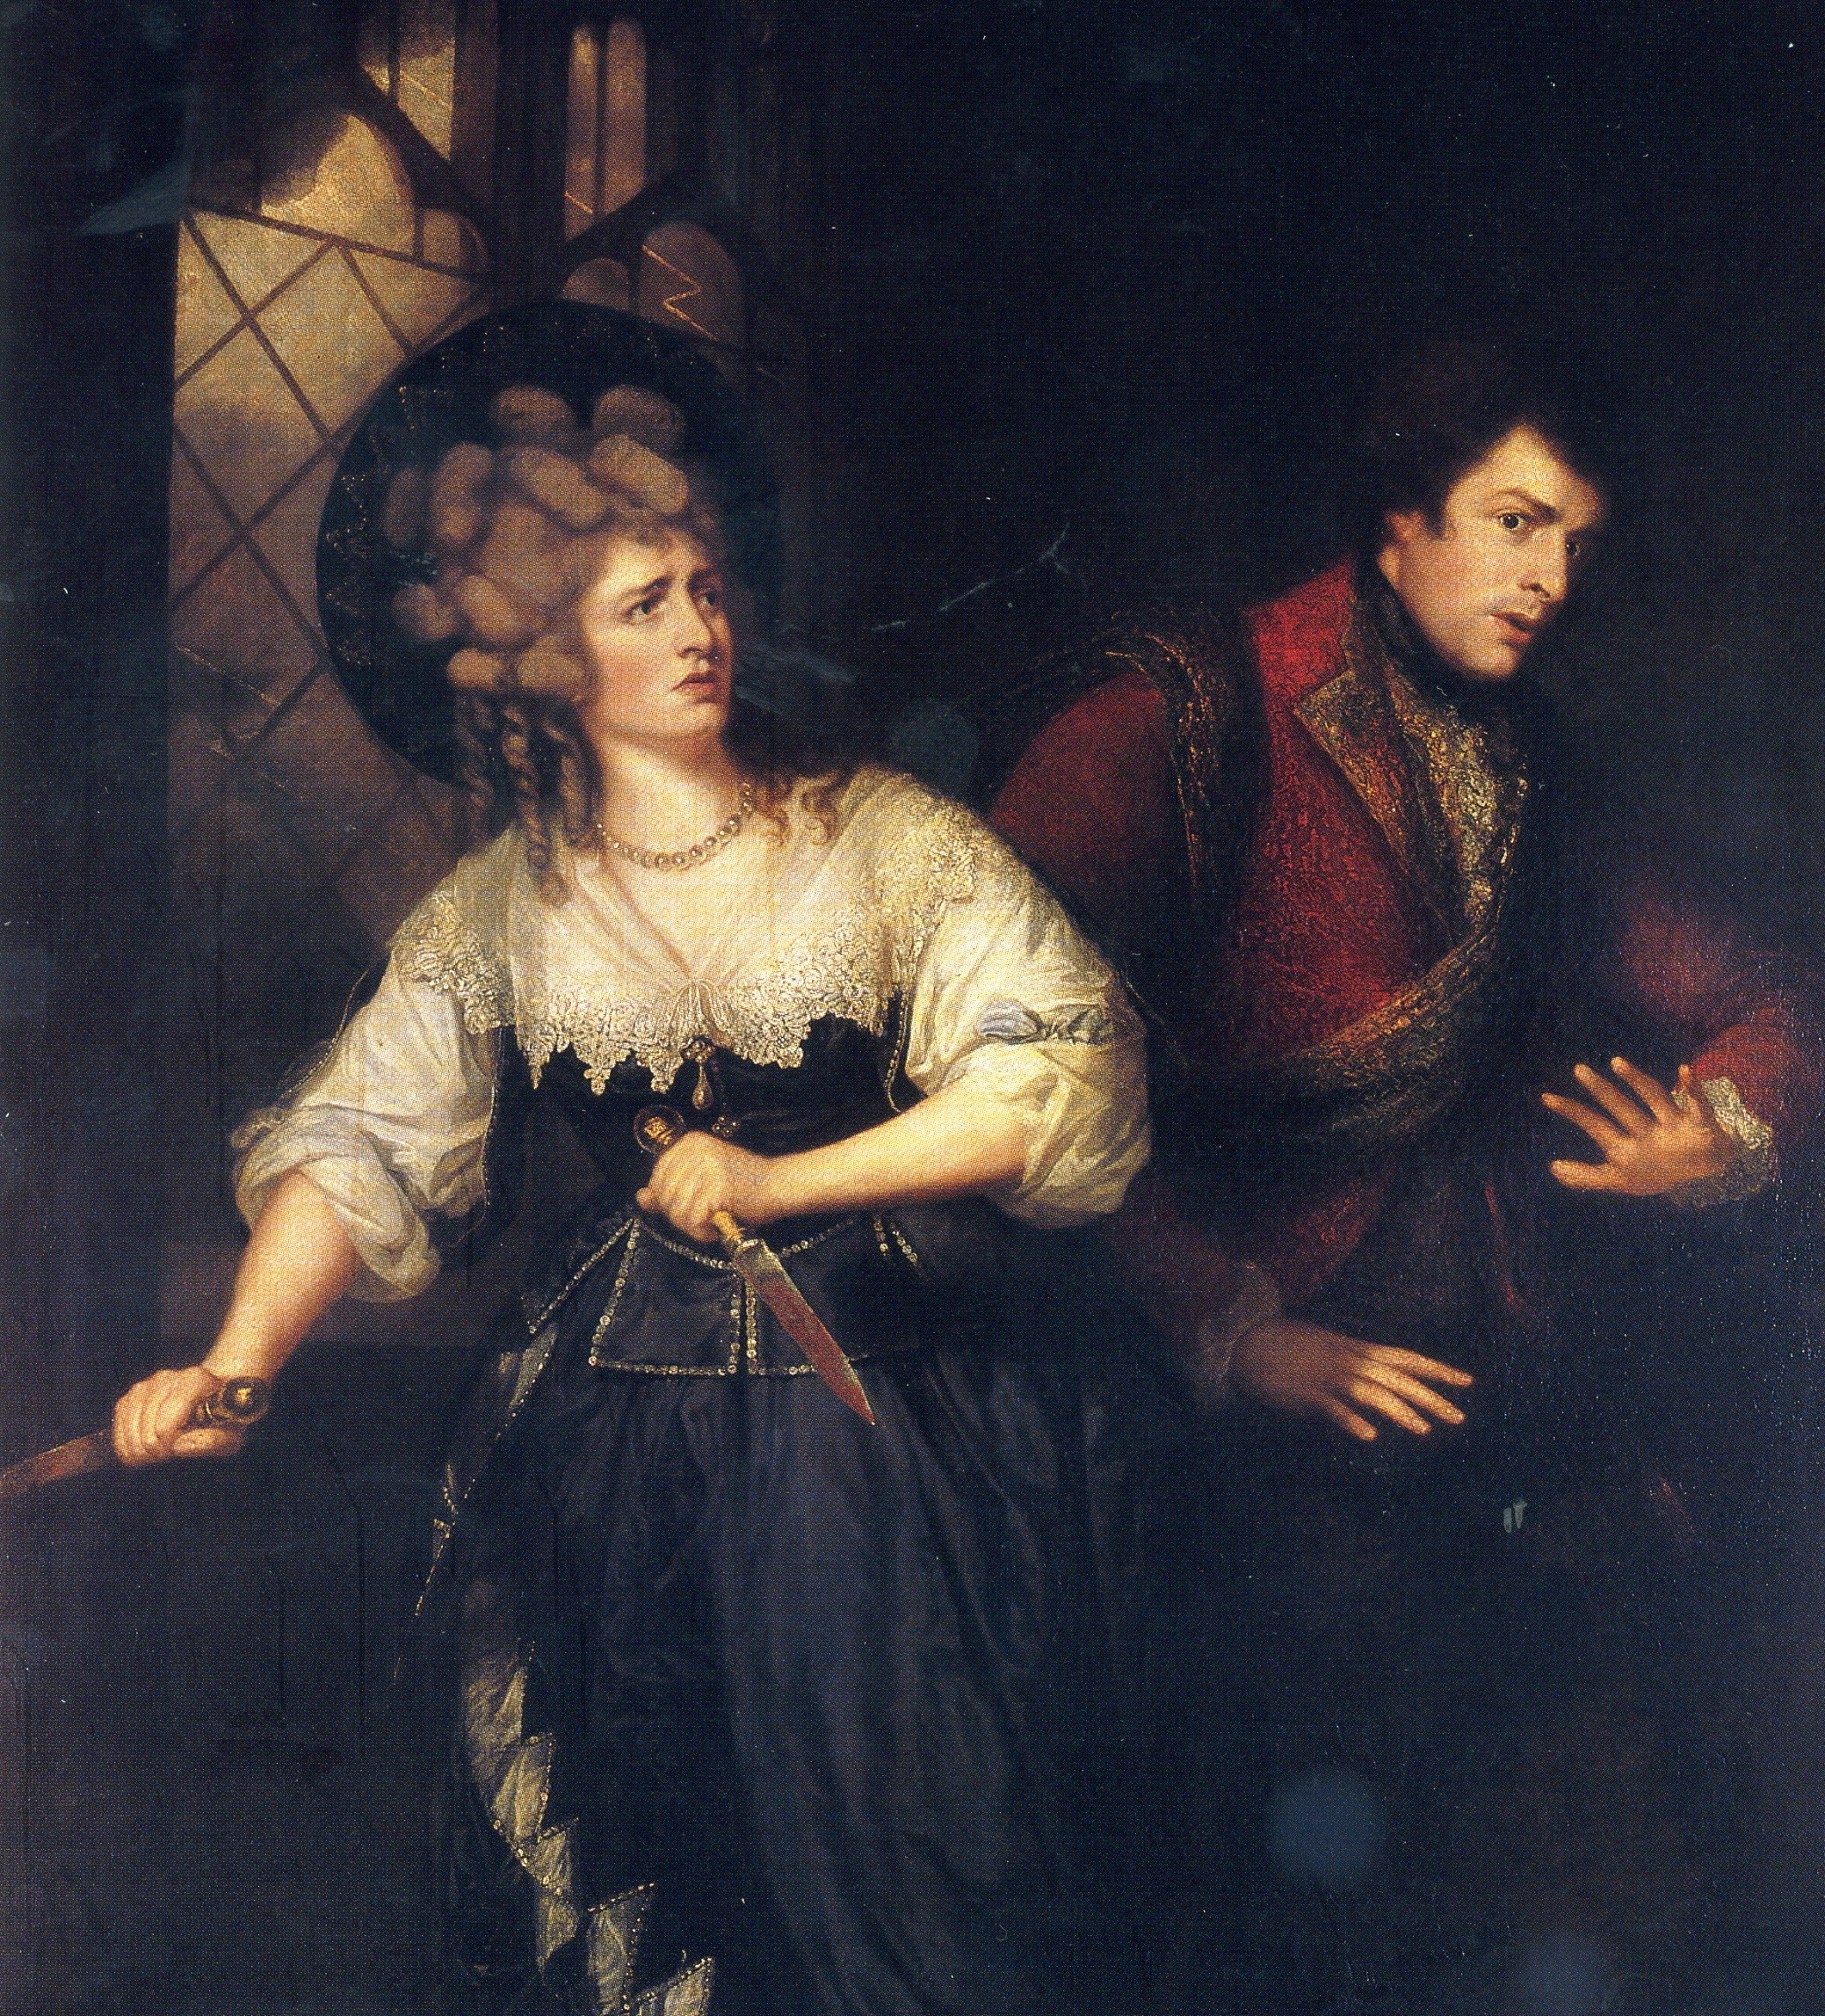 how does lady macbeth persuade macbeth to commit the murder Here's another count against ambition: after reading the letter from her husband (which recounts the witches' prophesy), lady macbeth's thoughts immediately turn to murder.